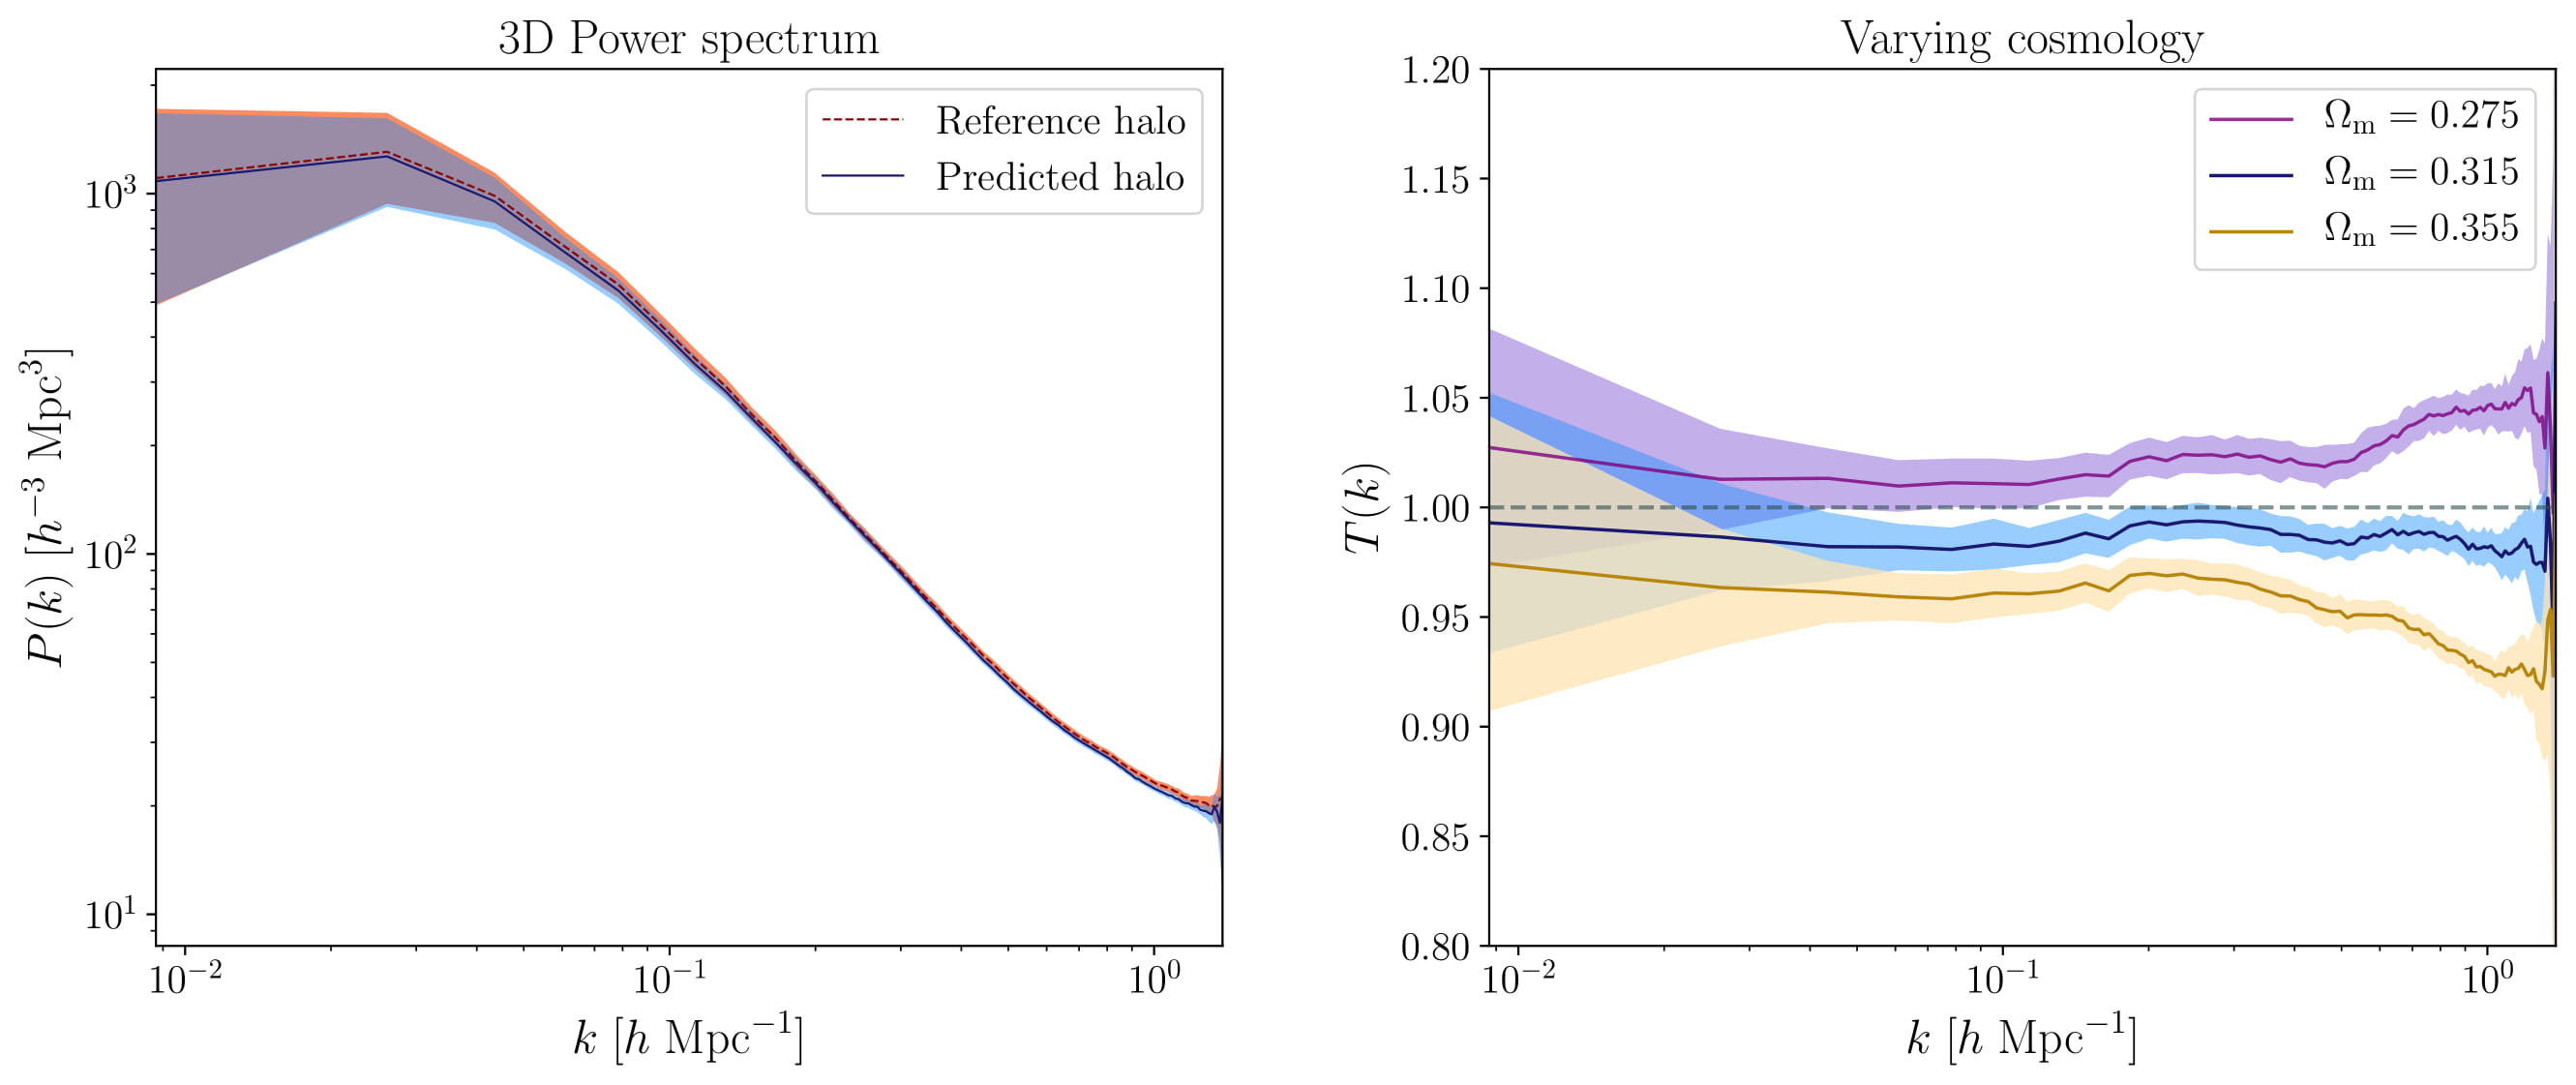 3D power spectra of reference and predicted halo fields